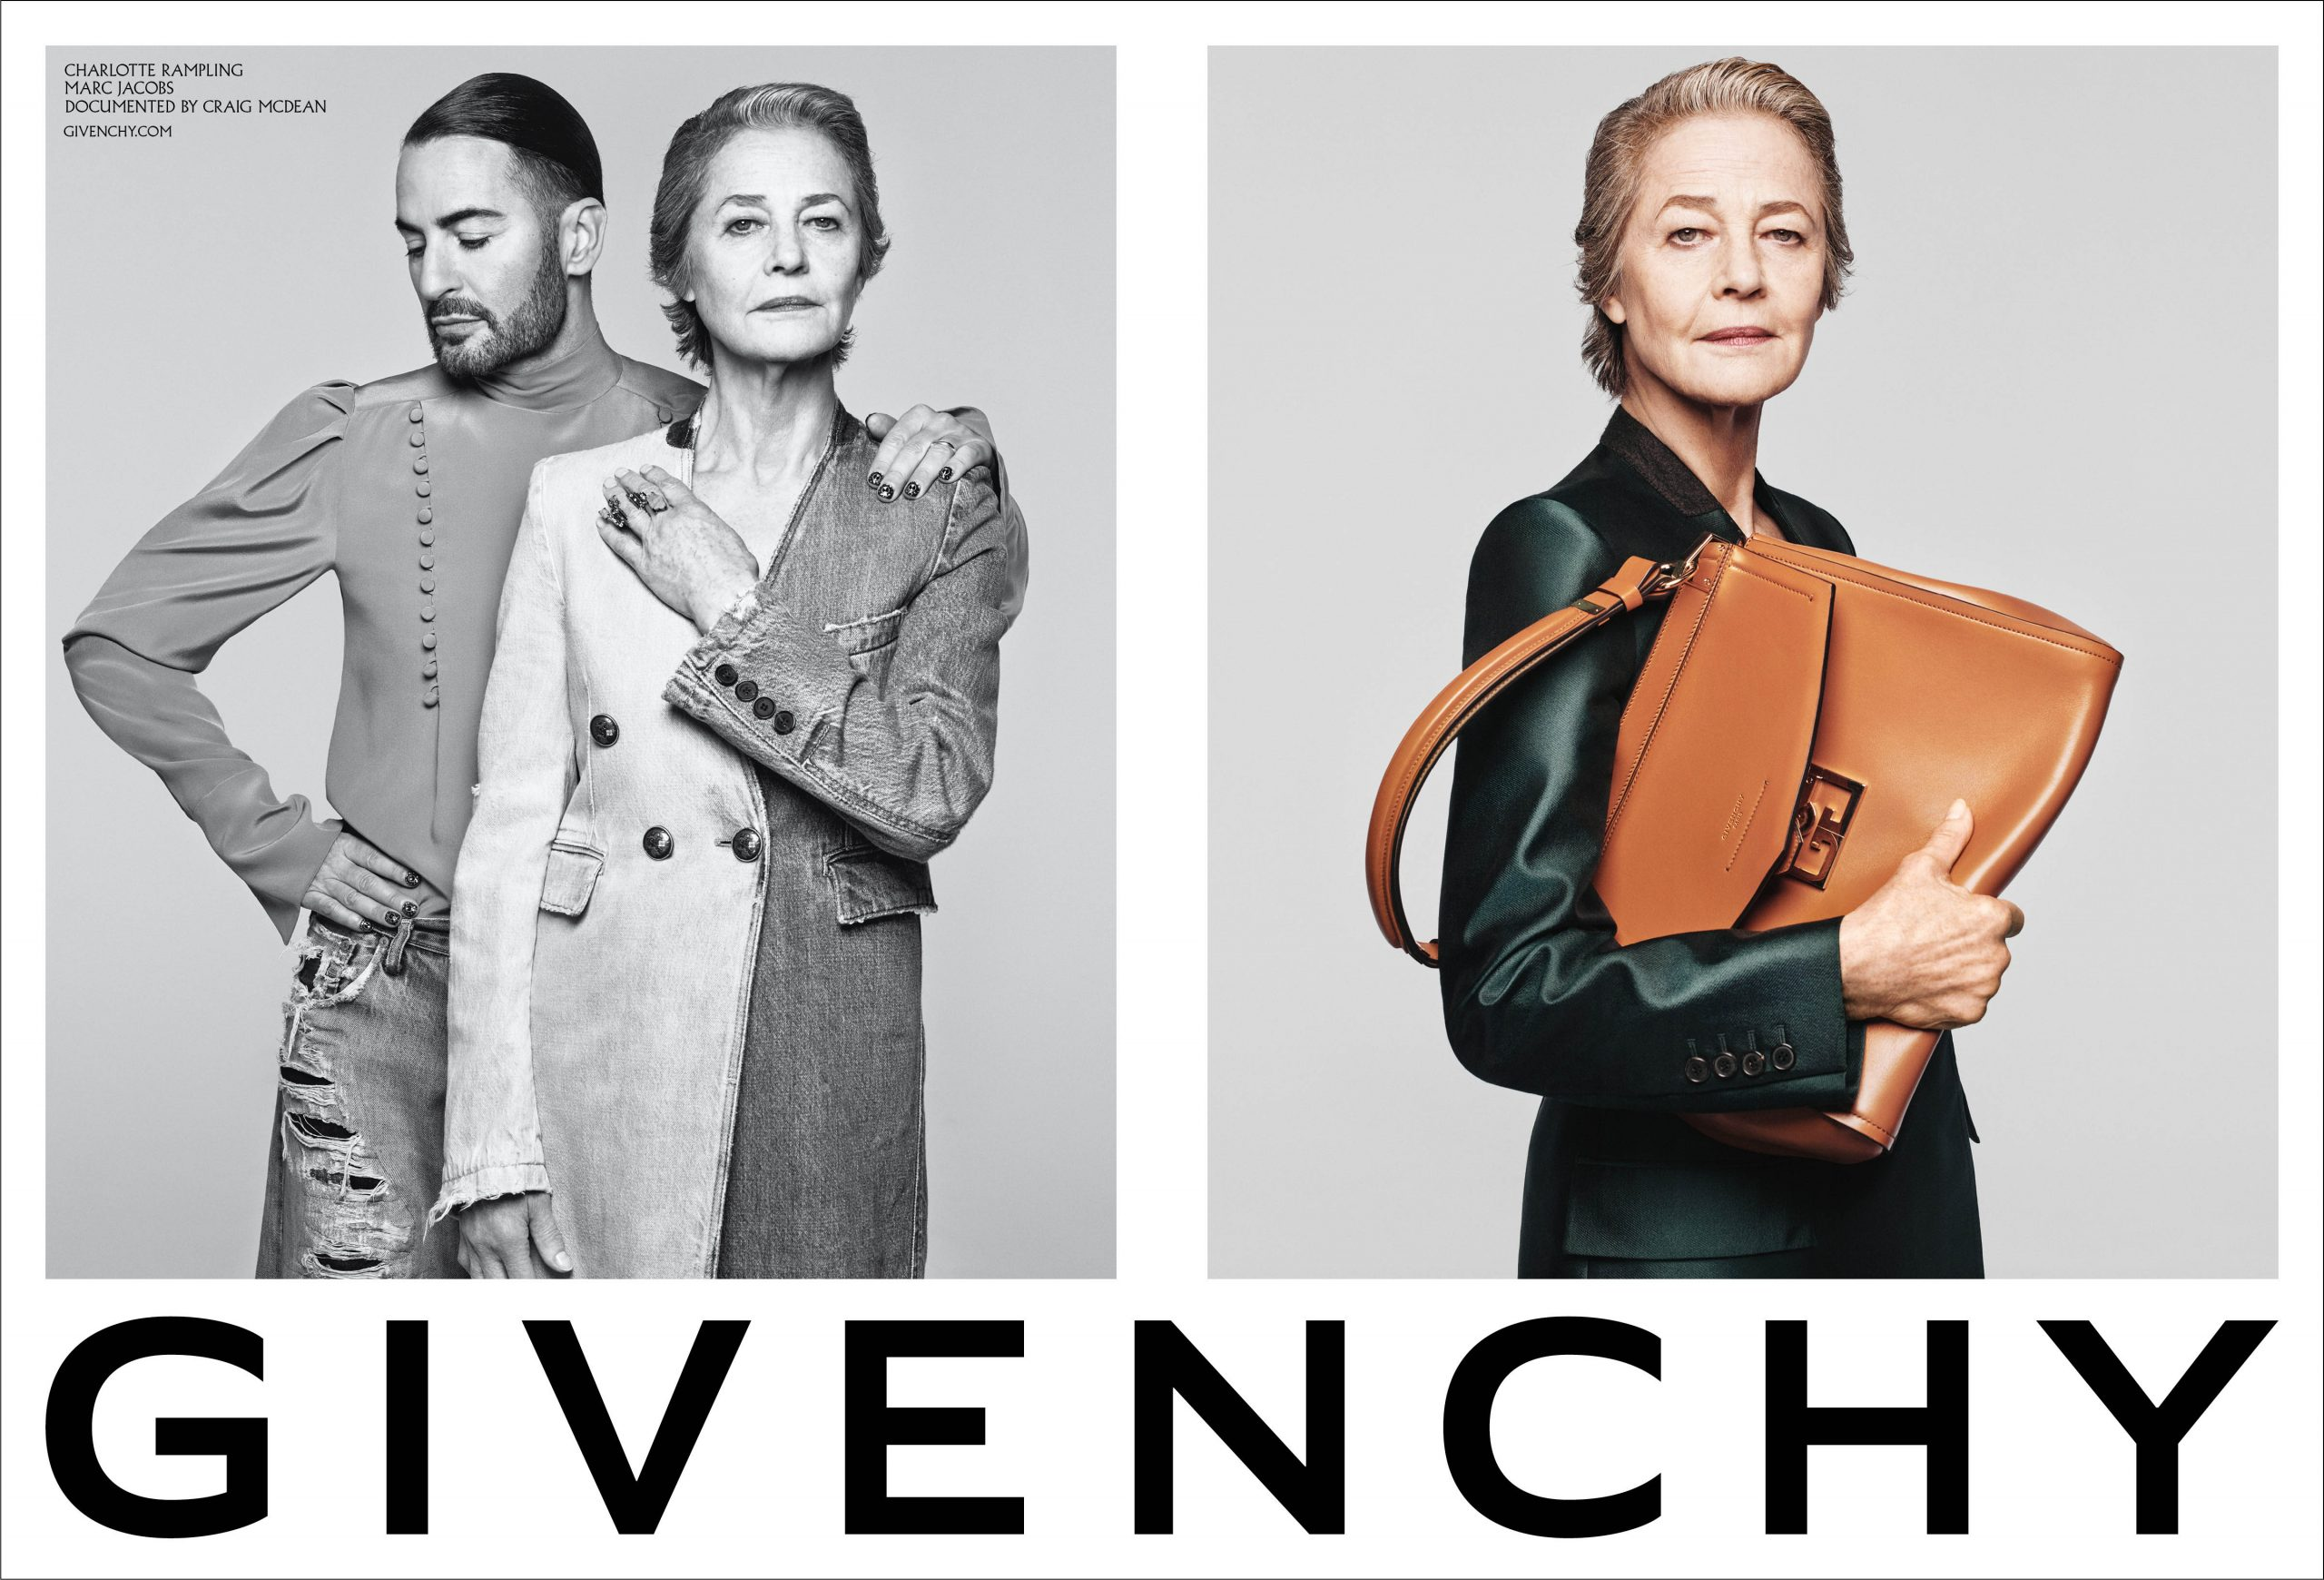 Givenchy Spring 2020 Fashion Ad Campaign with Marc Jacobs and Charlotte Rampling Photos